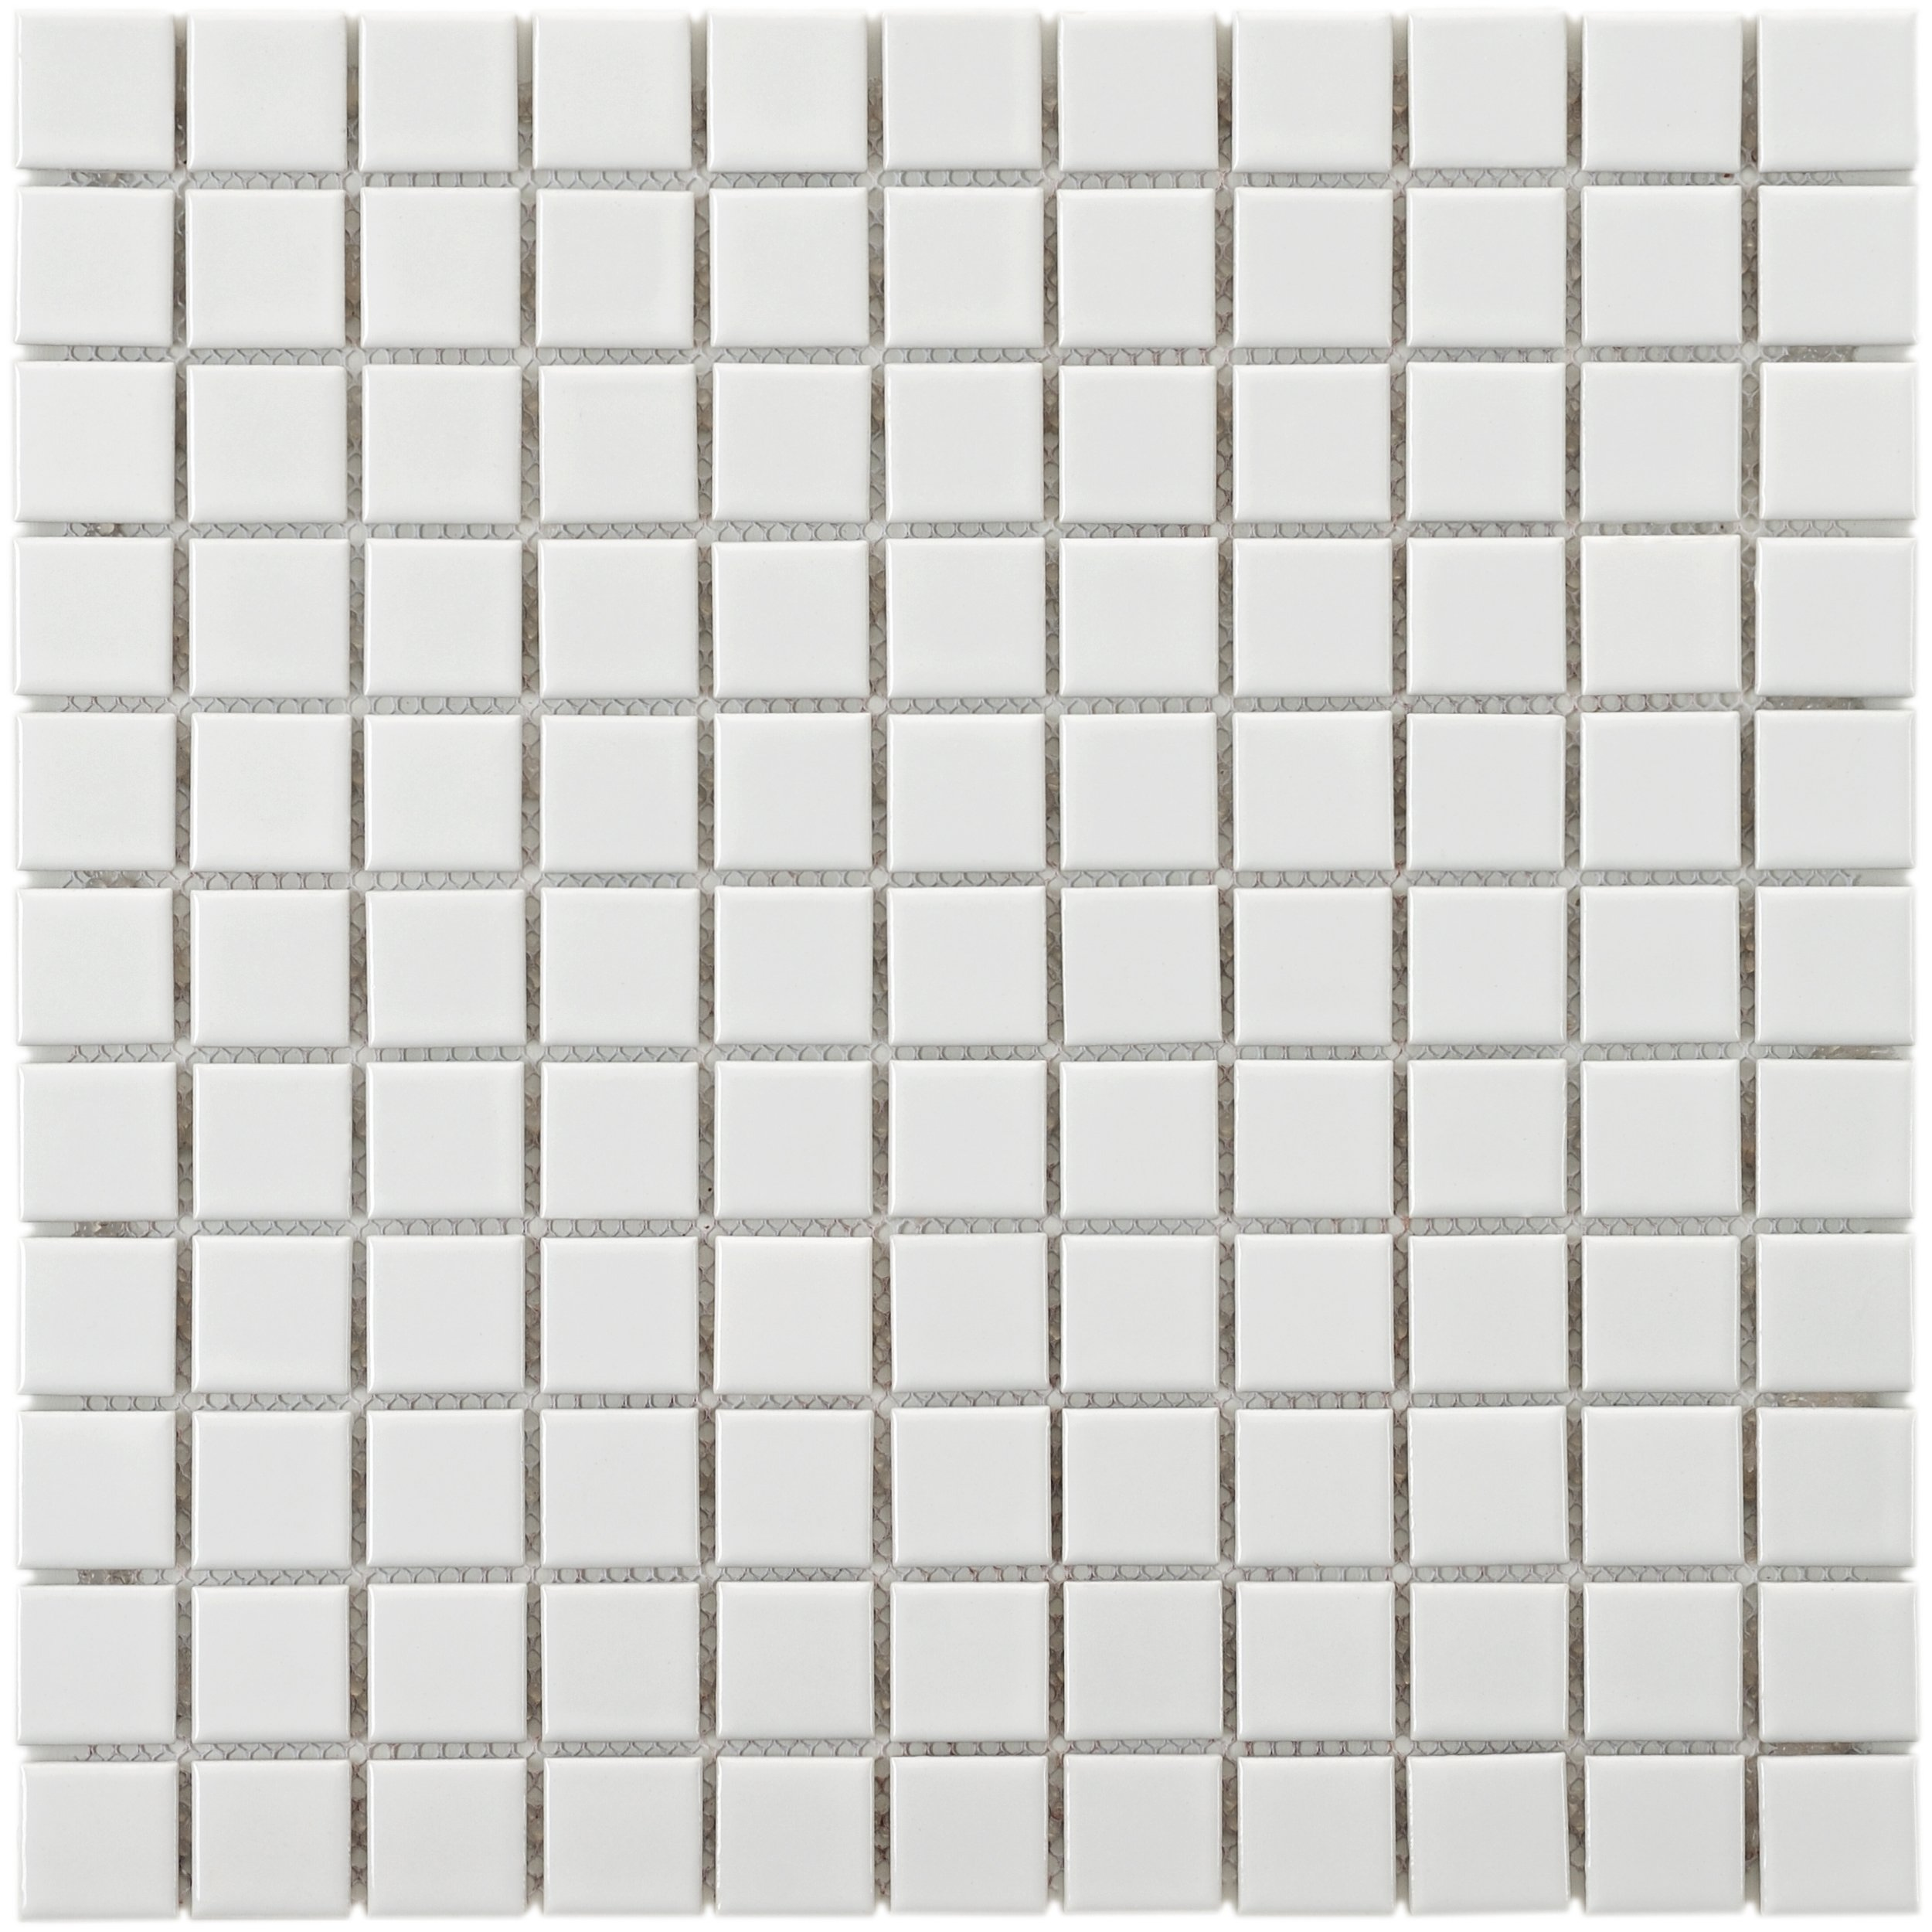 SomerTile FXLMSW Retro Square Porcelain Floor and Wall Tile, 11.75'' x 11.75'', White